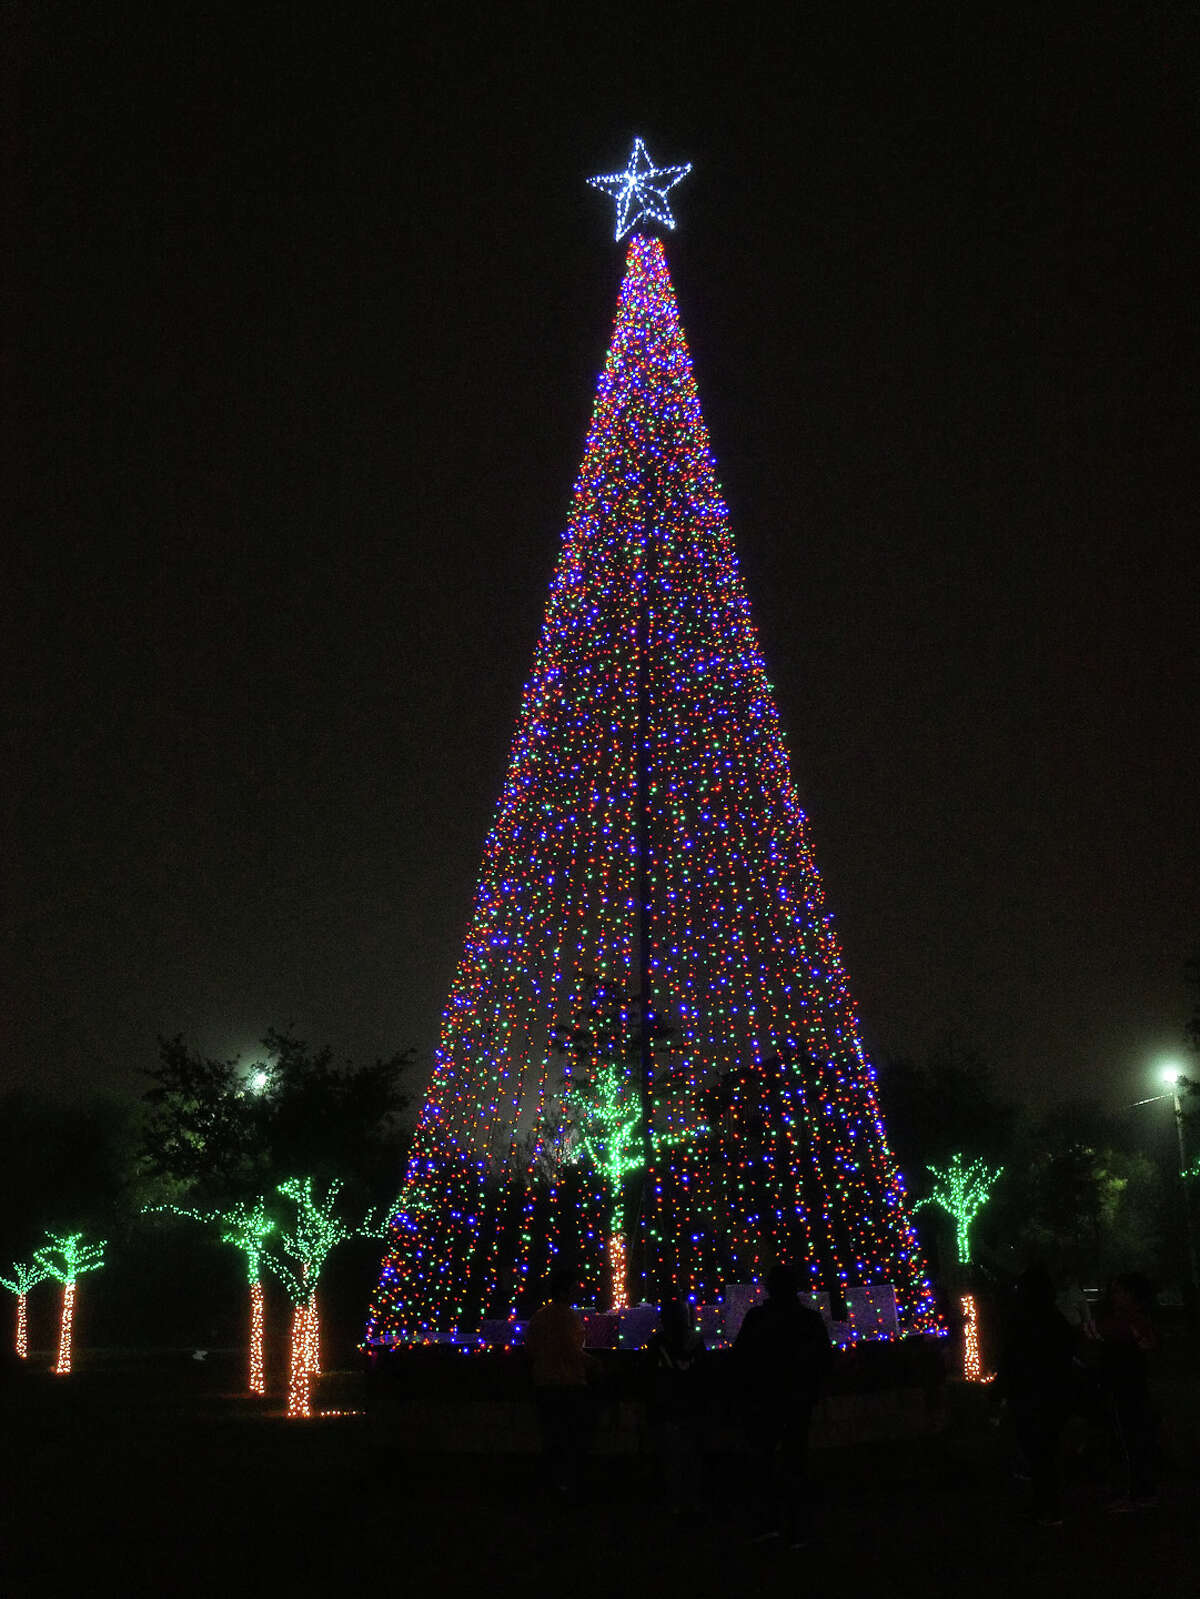 Sights and sounds of the City Council District III Holiday Extravaganza, at Slaughter Park.